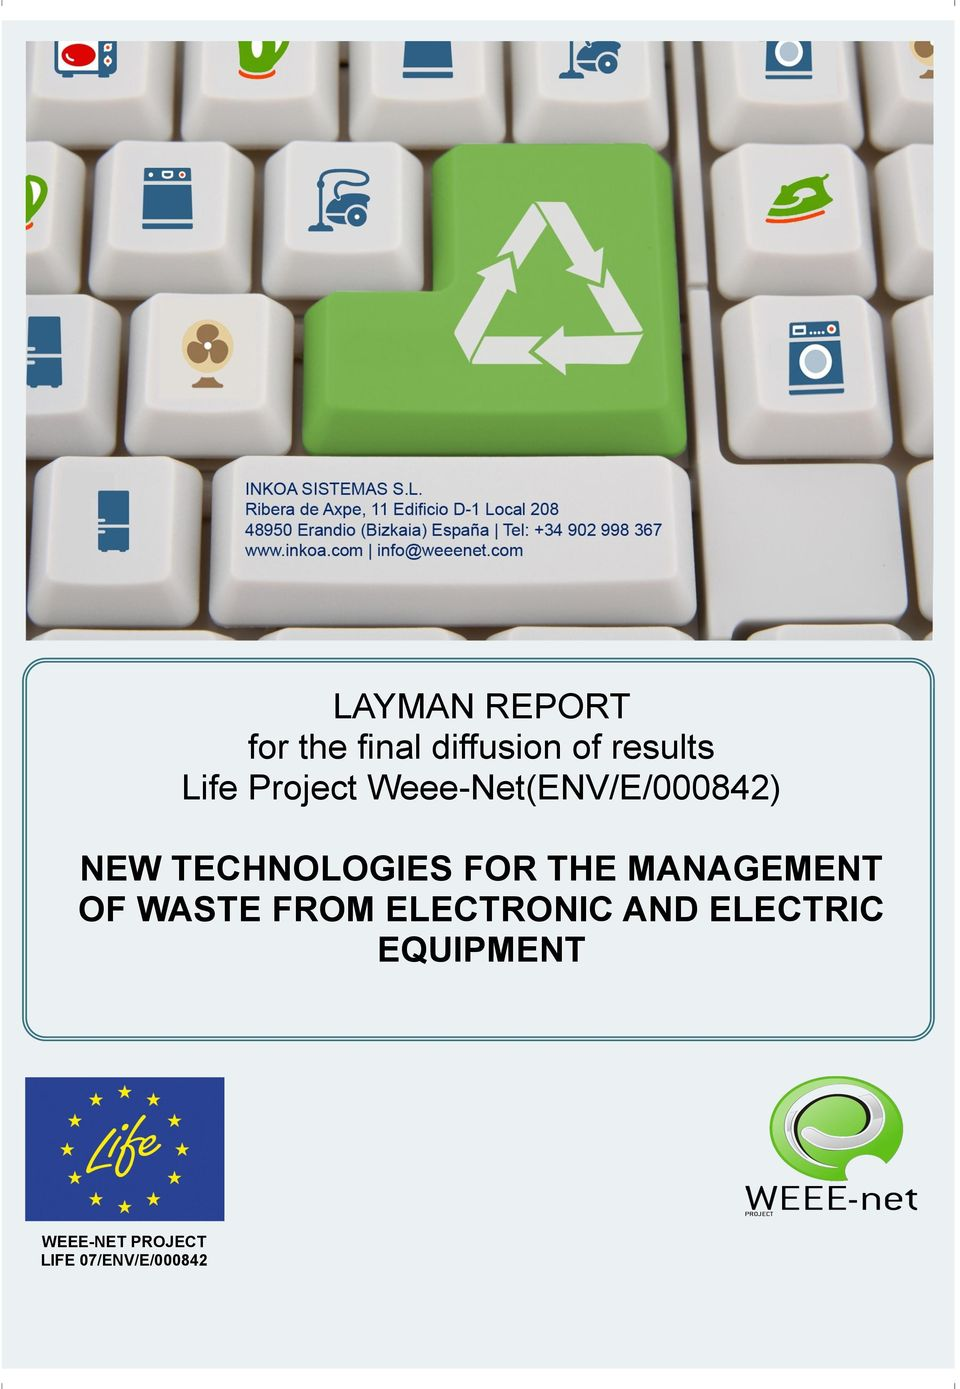 NEW TECHNOLOGIES FOR THE MANAGEMENT OF WASTE